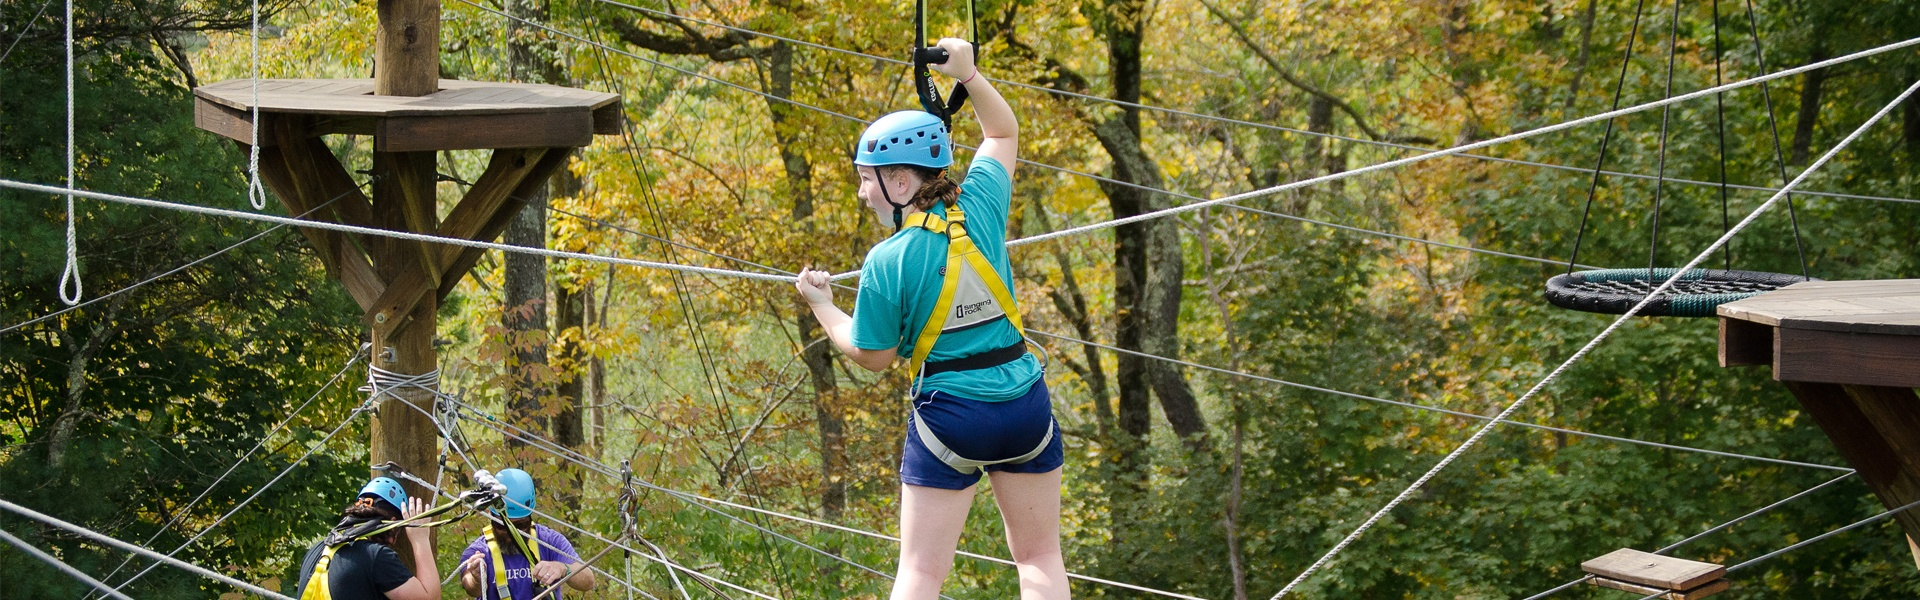 Outdoor Community Ropes Course